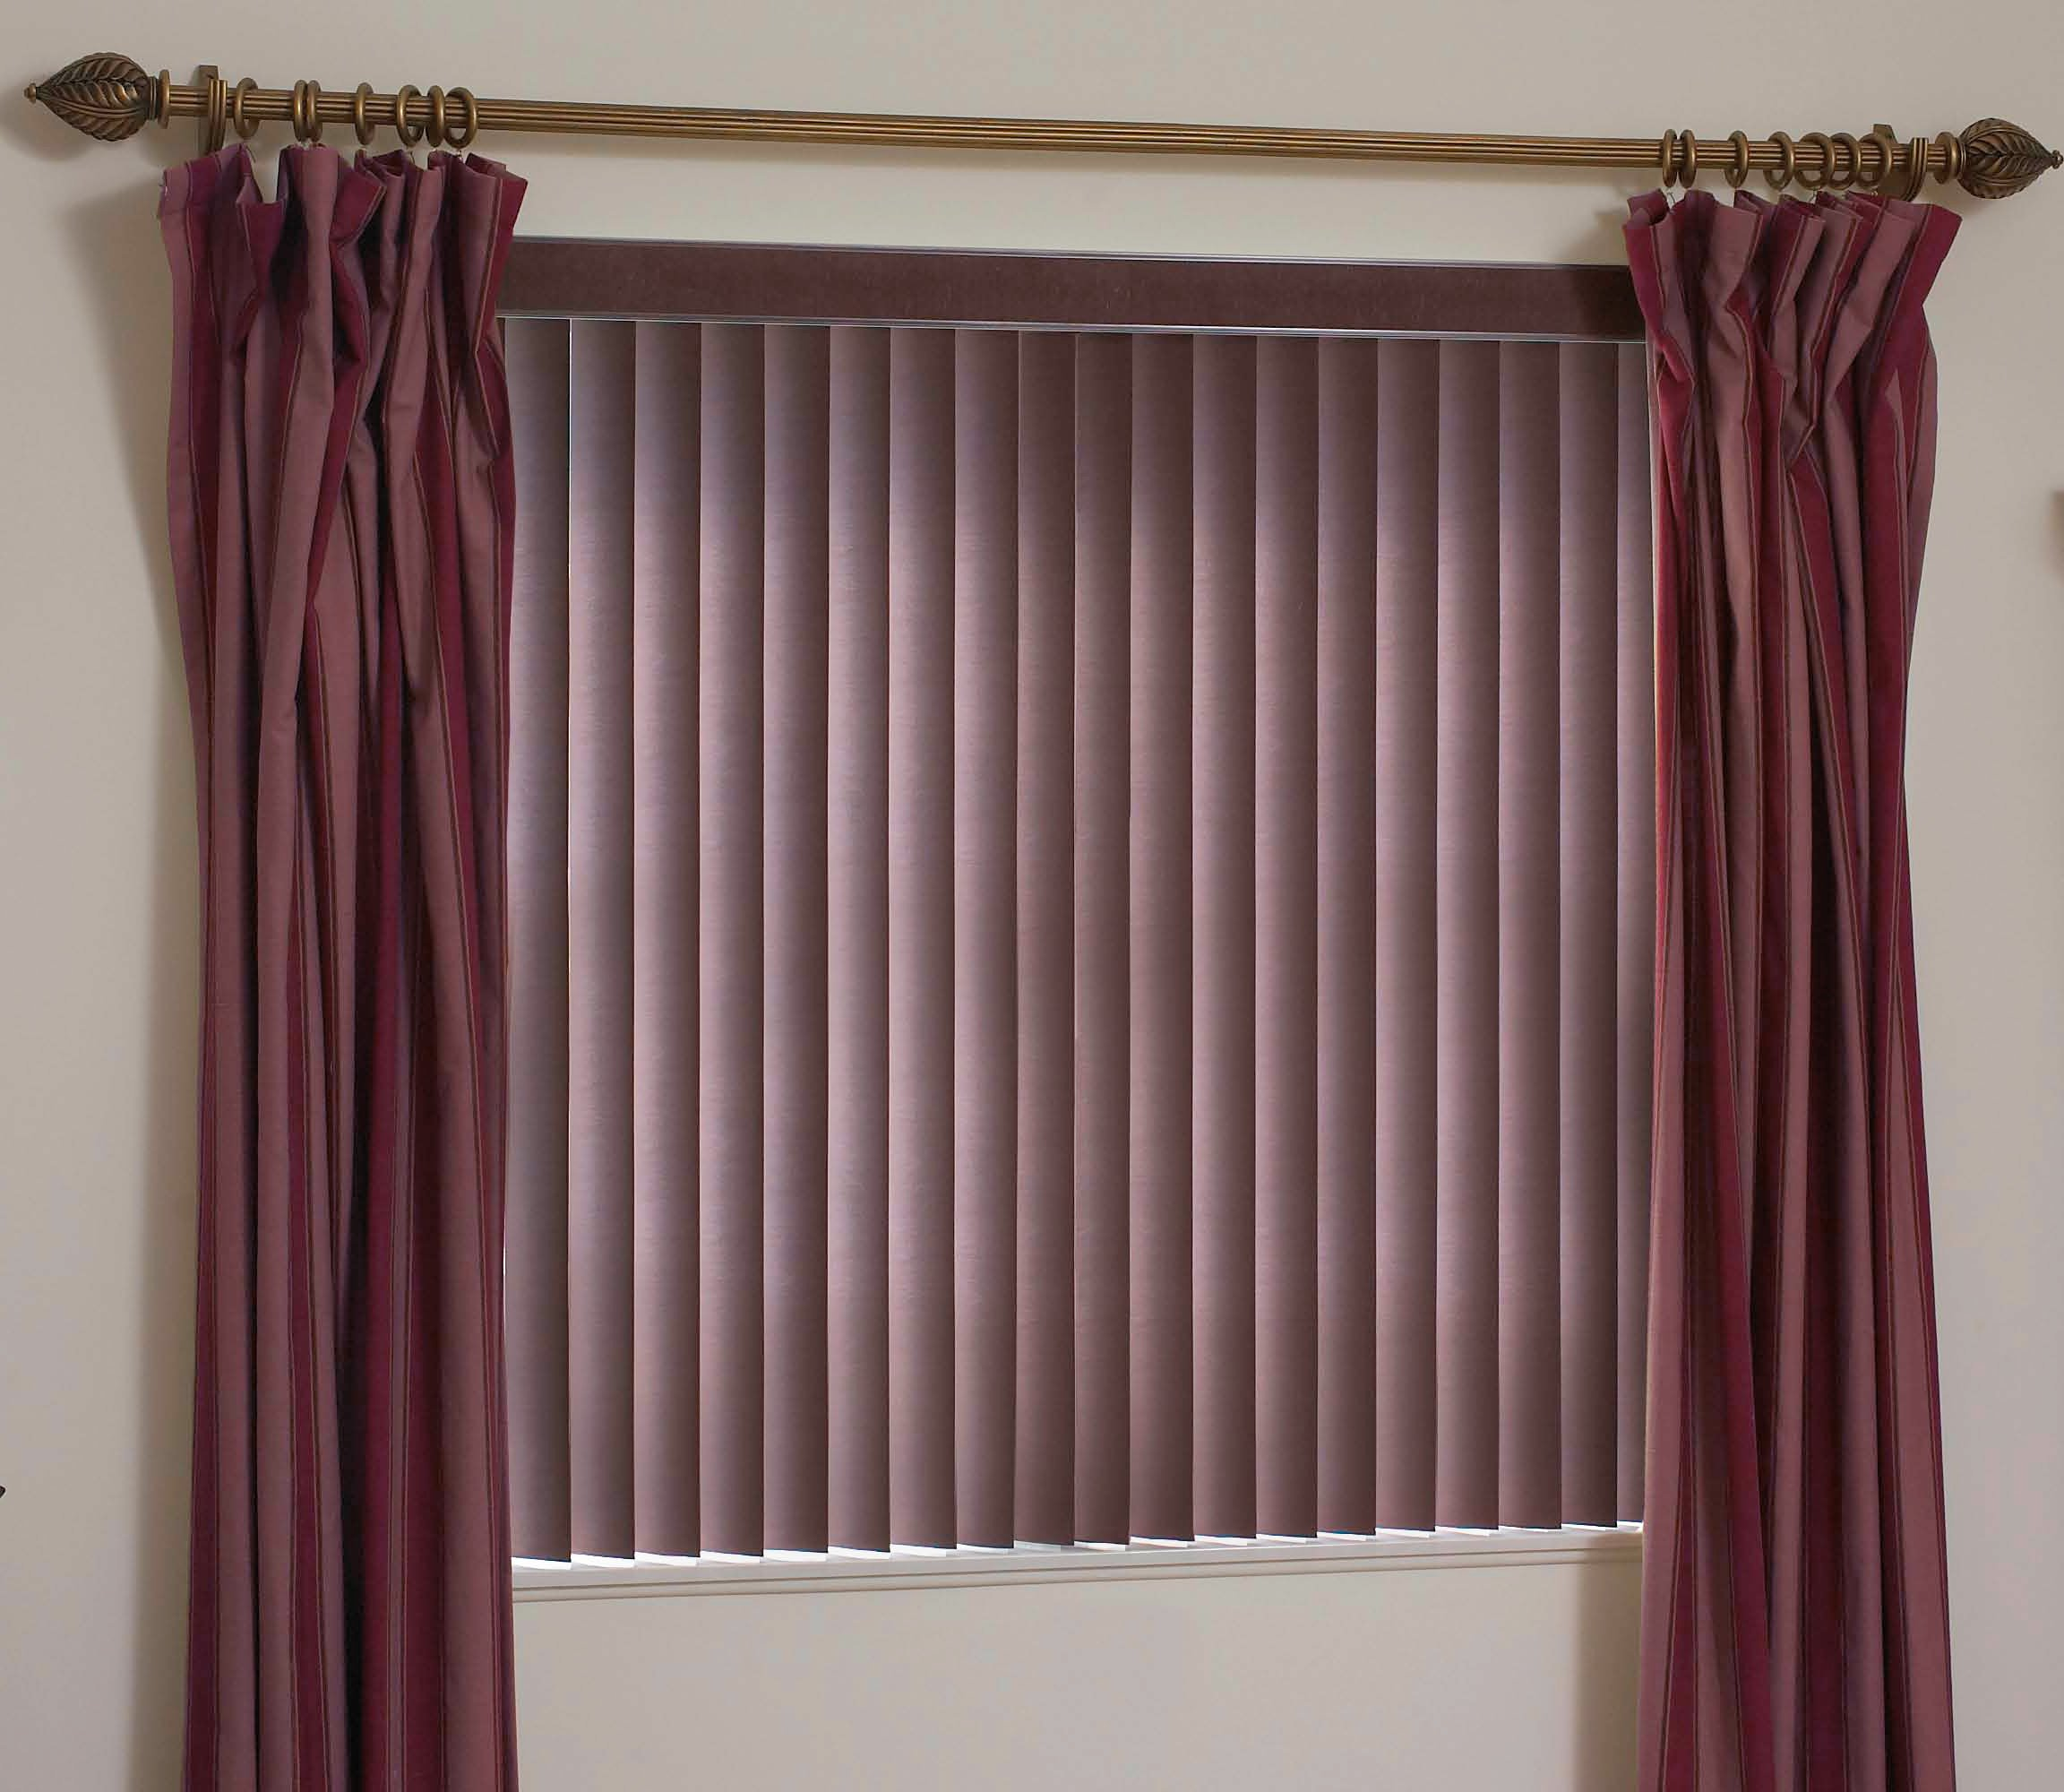 sell that blinds rod blind a how they solutions conceal with hang fits kind track inside put you vertical and can the something to called curtain smart diy any over curtains no then bracket